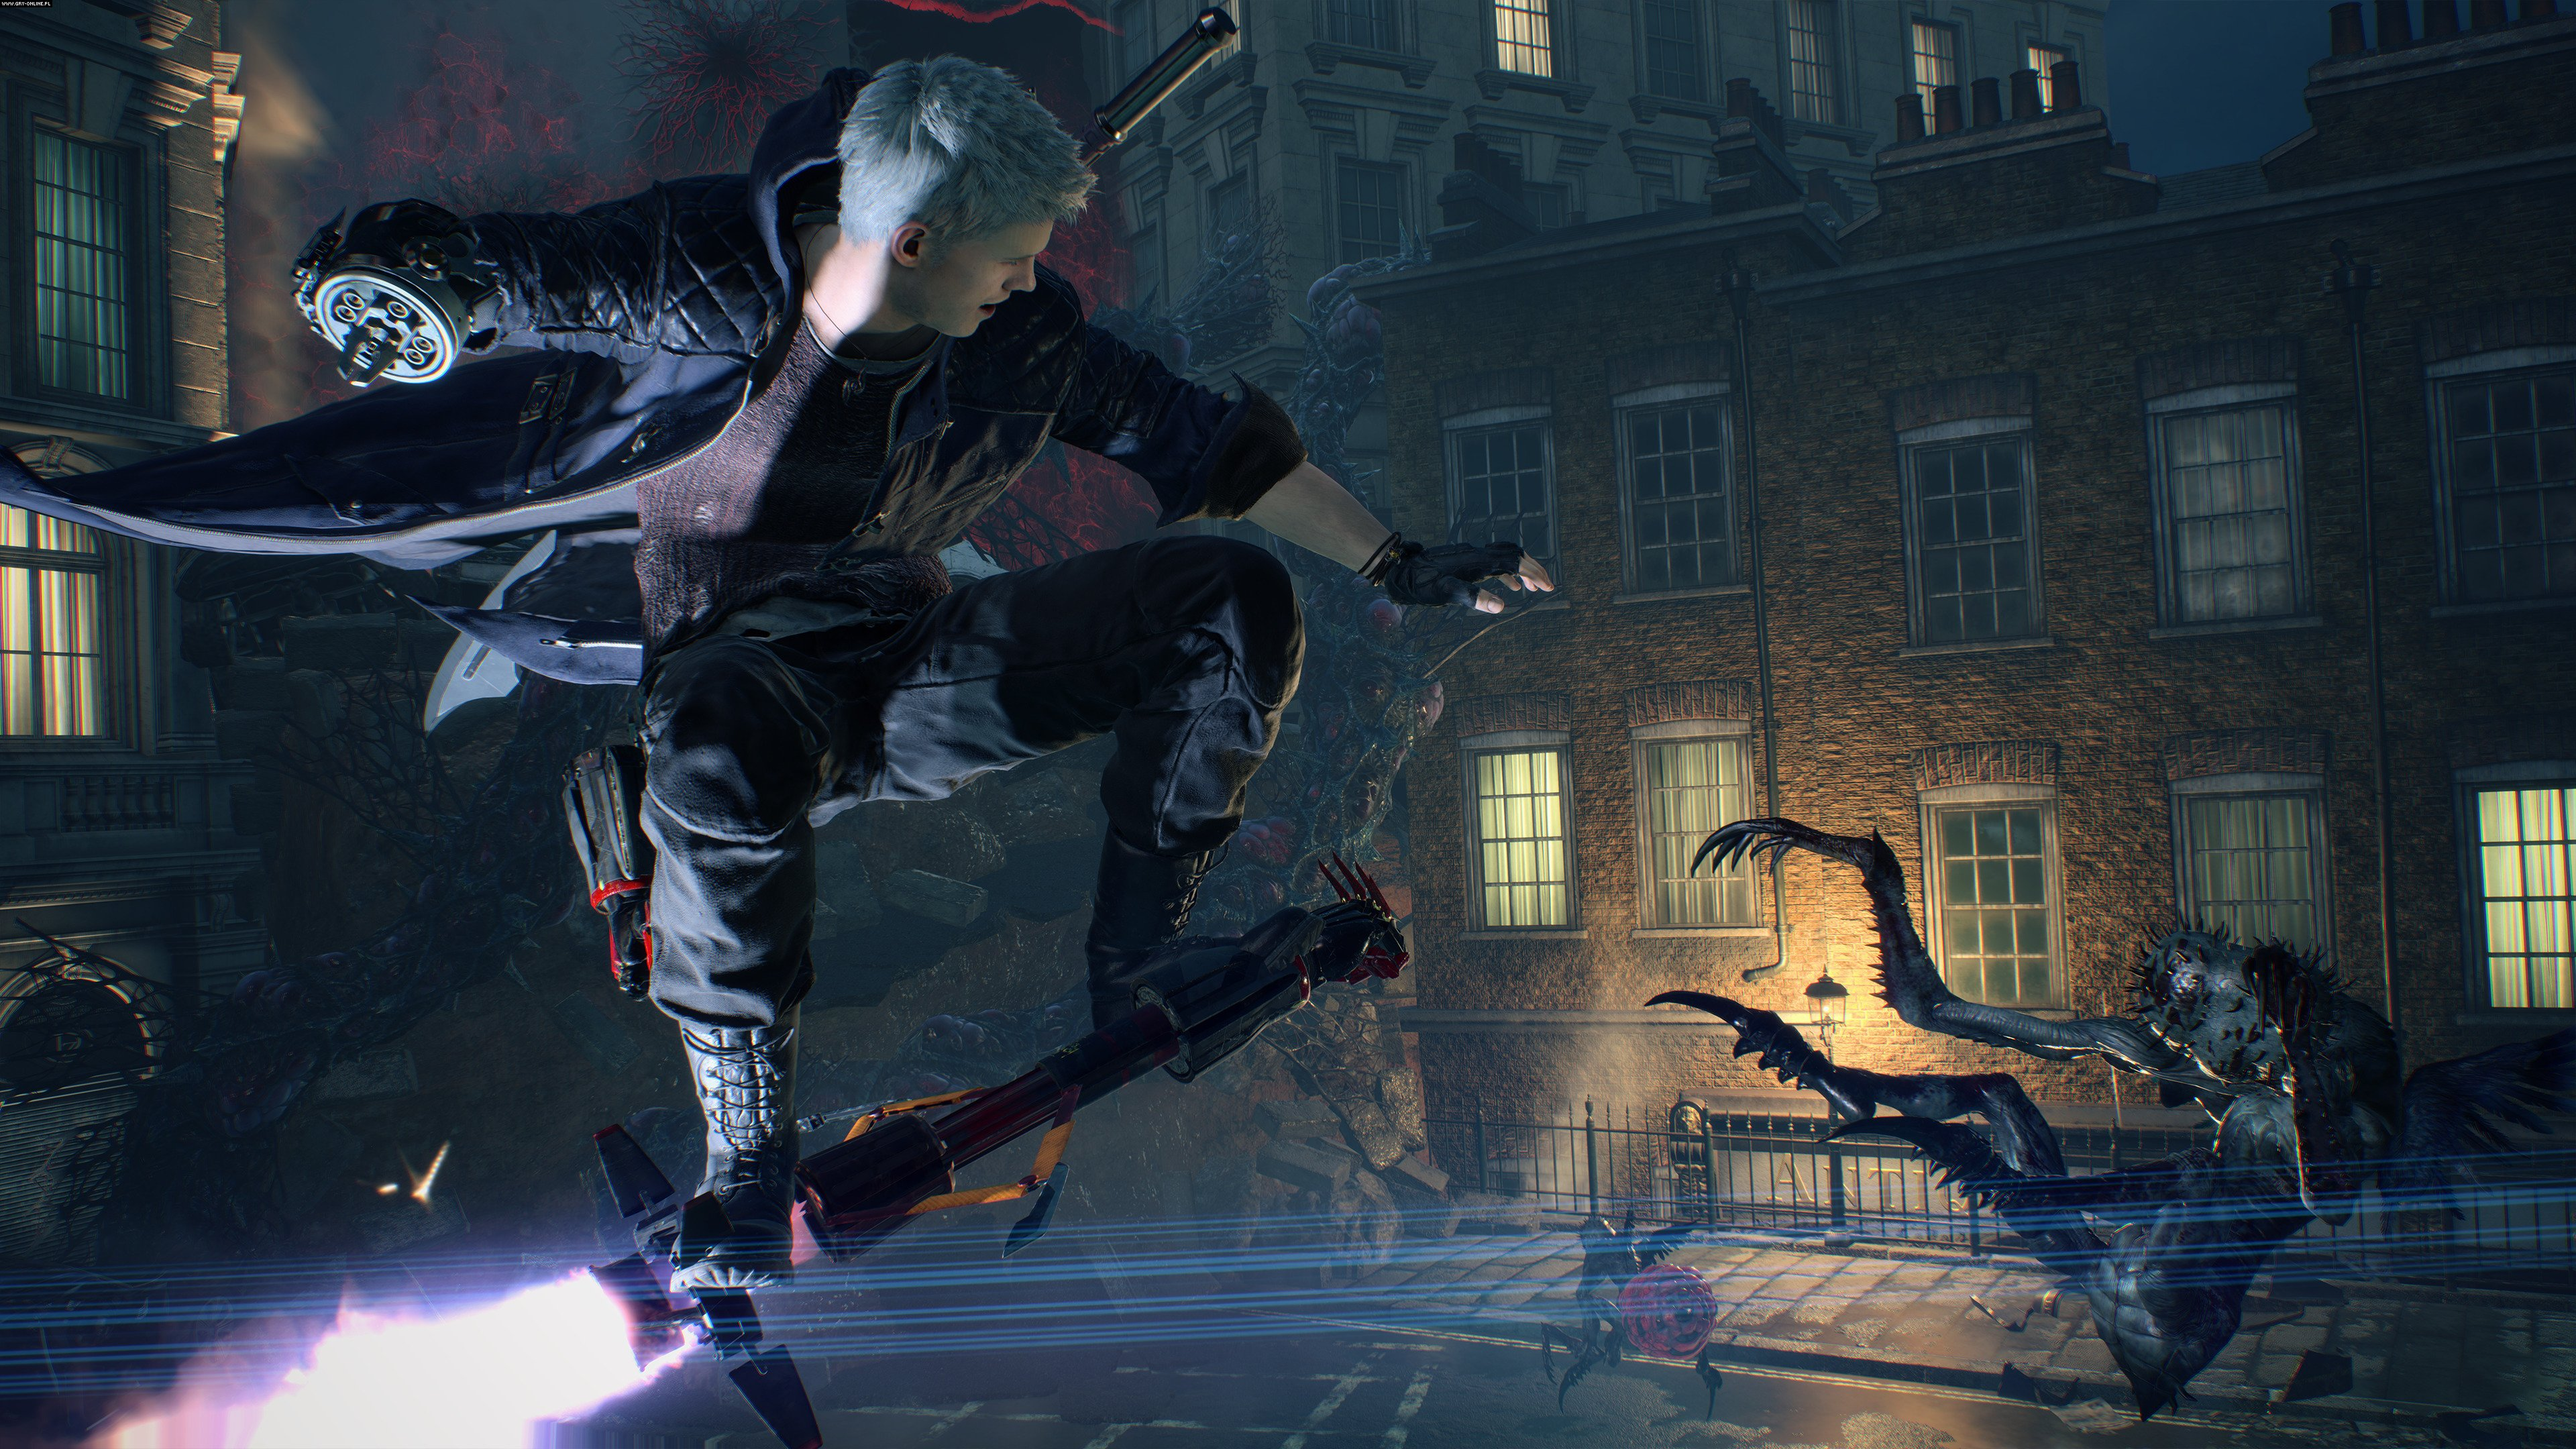 Devil May Cry 5 PC, PS4, XONE Games Image 73/81, Capcom